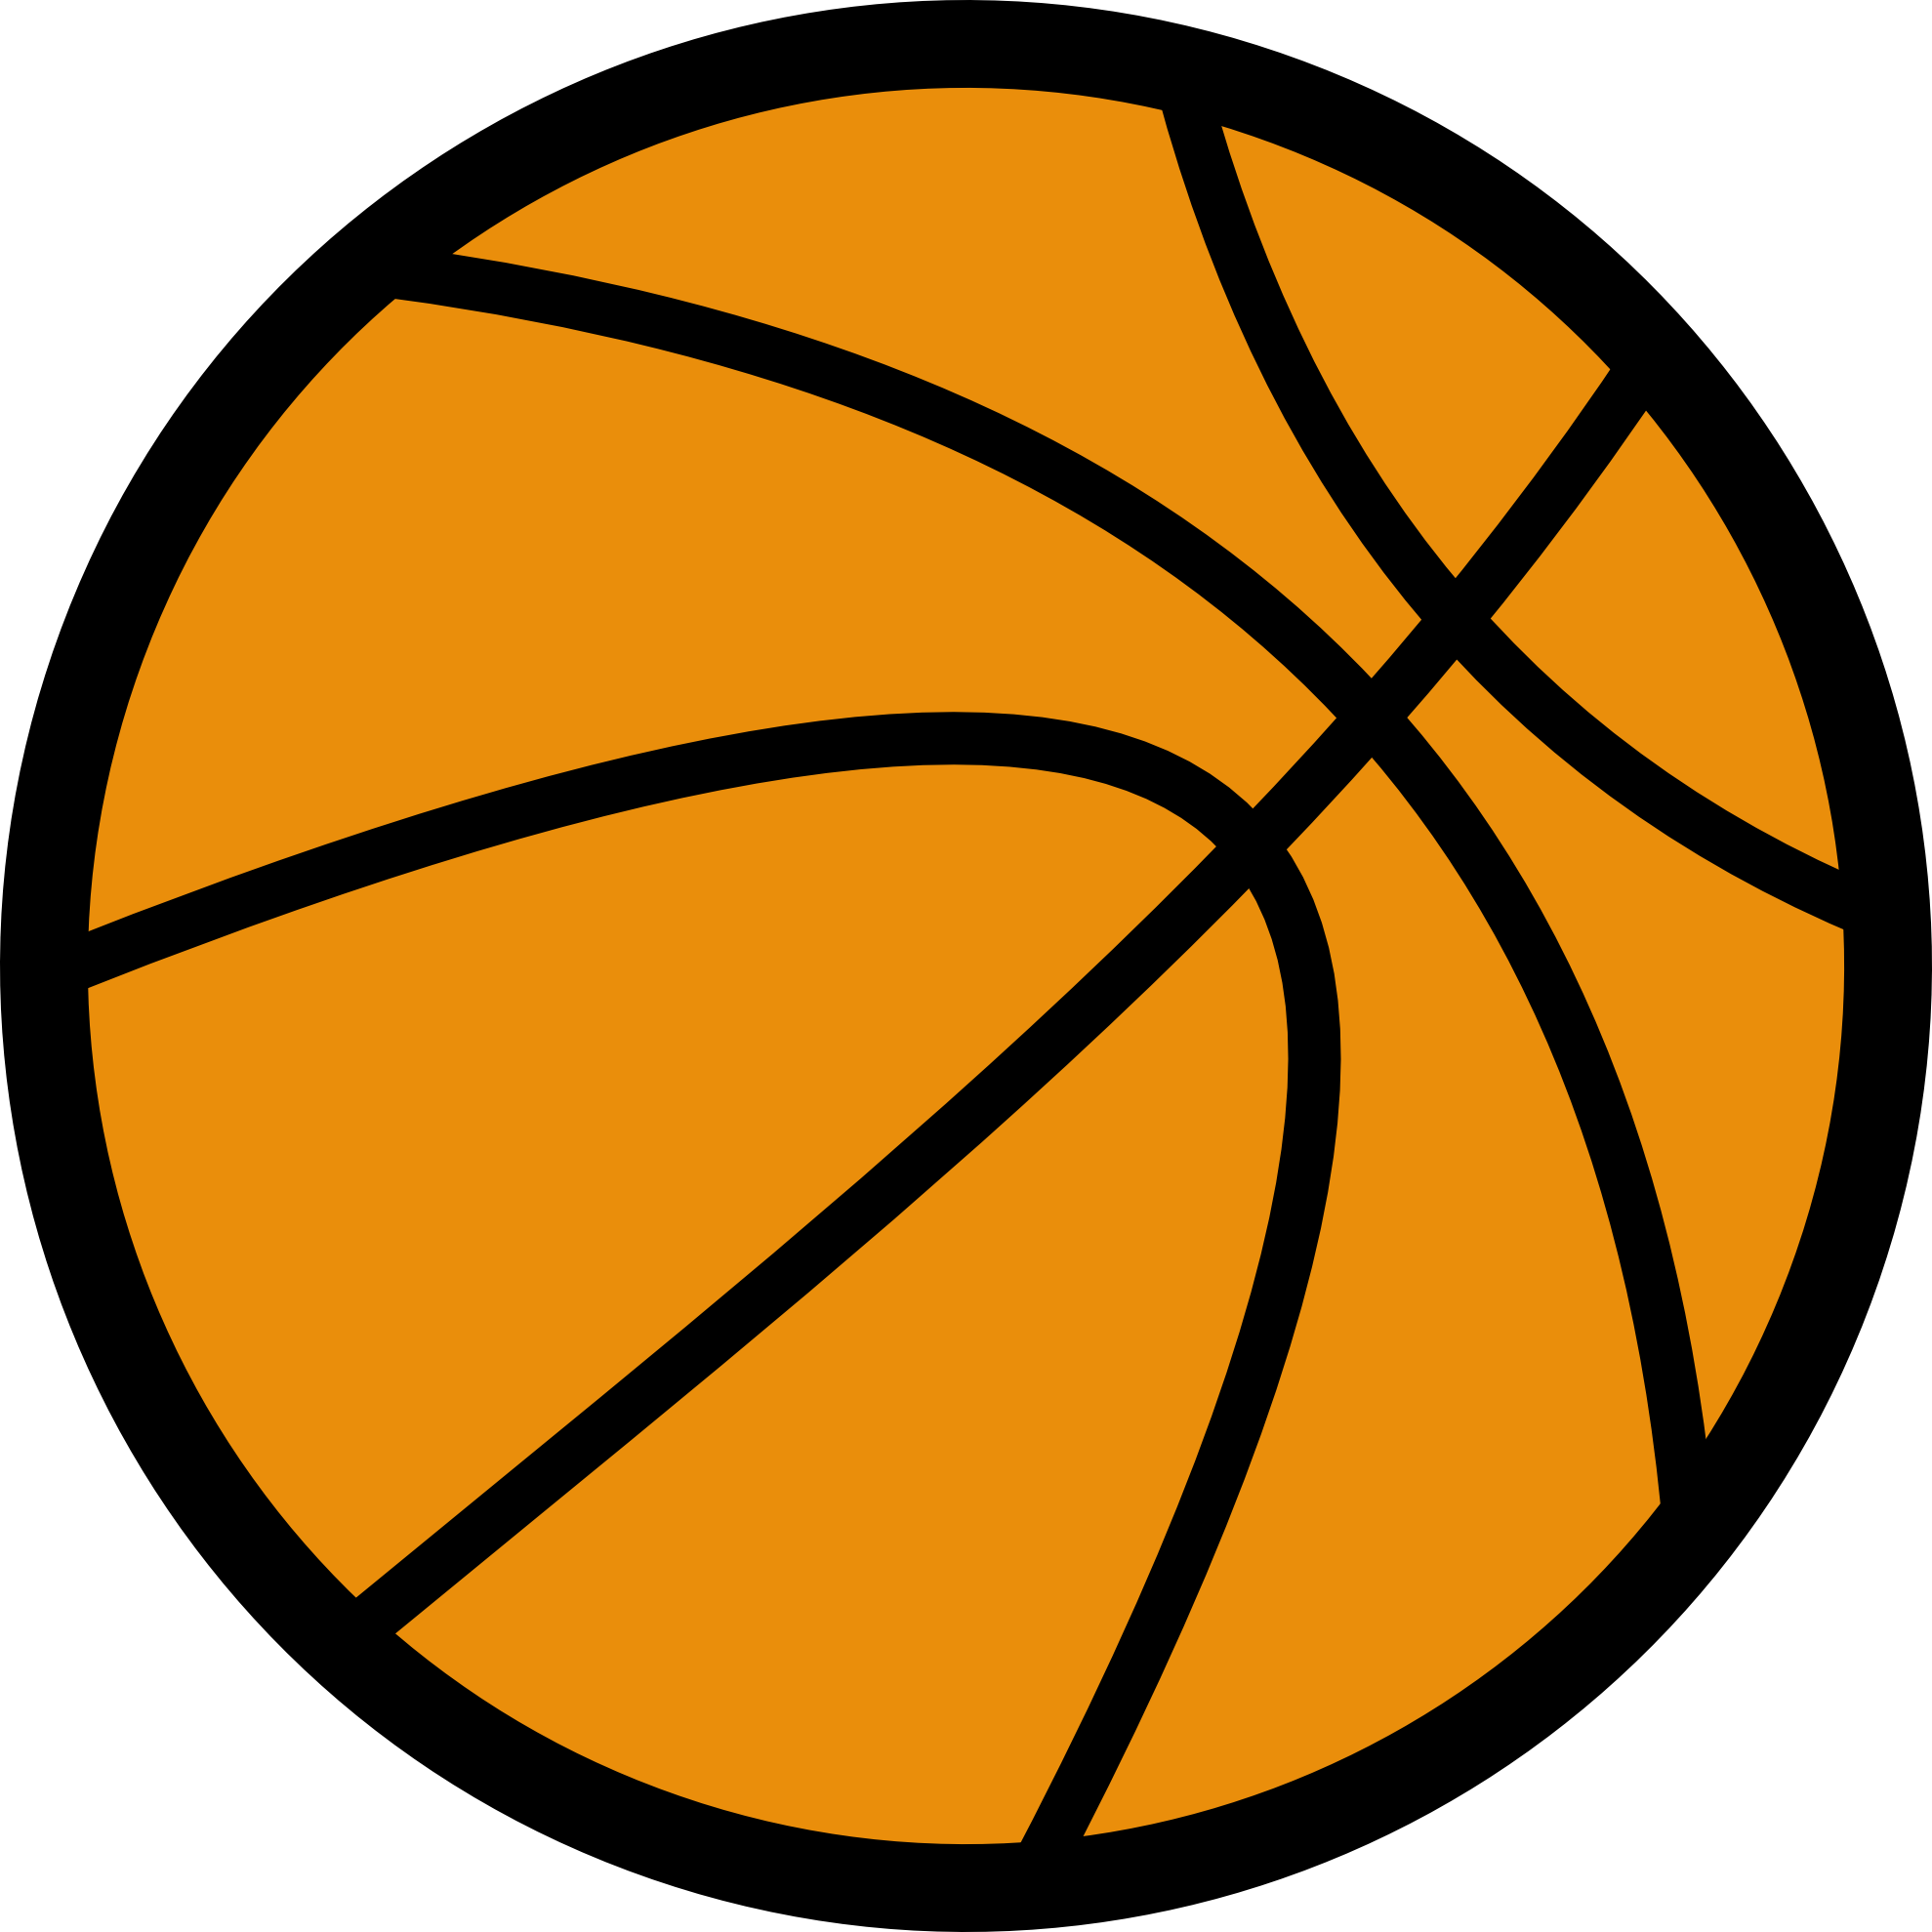 Basketball Ball Clipart.